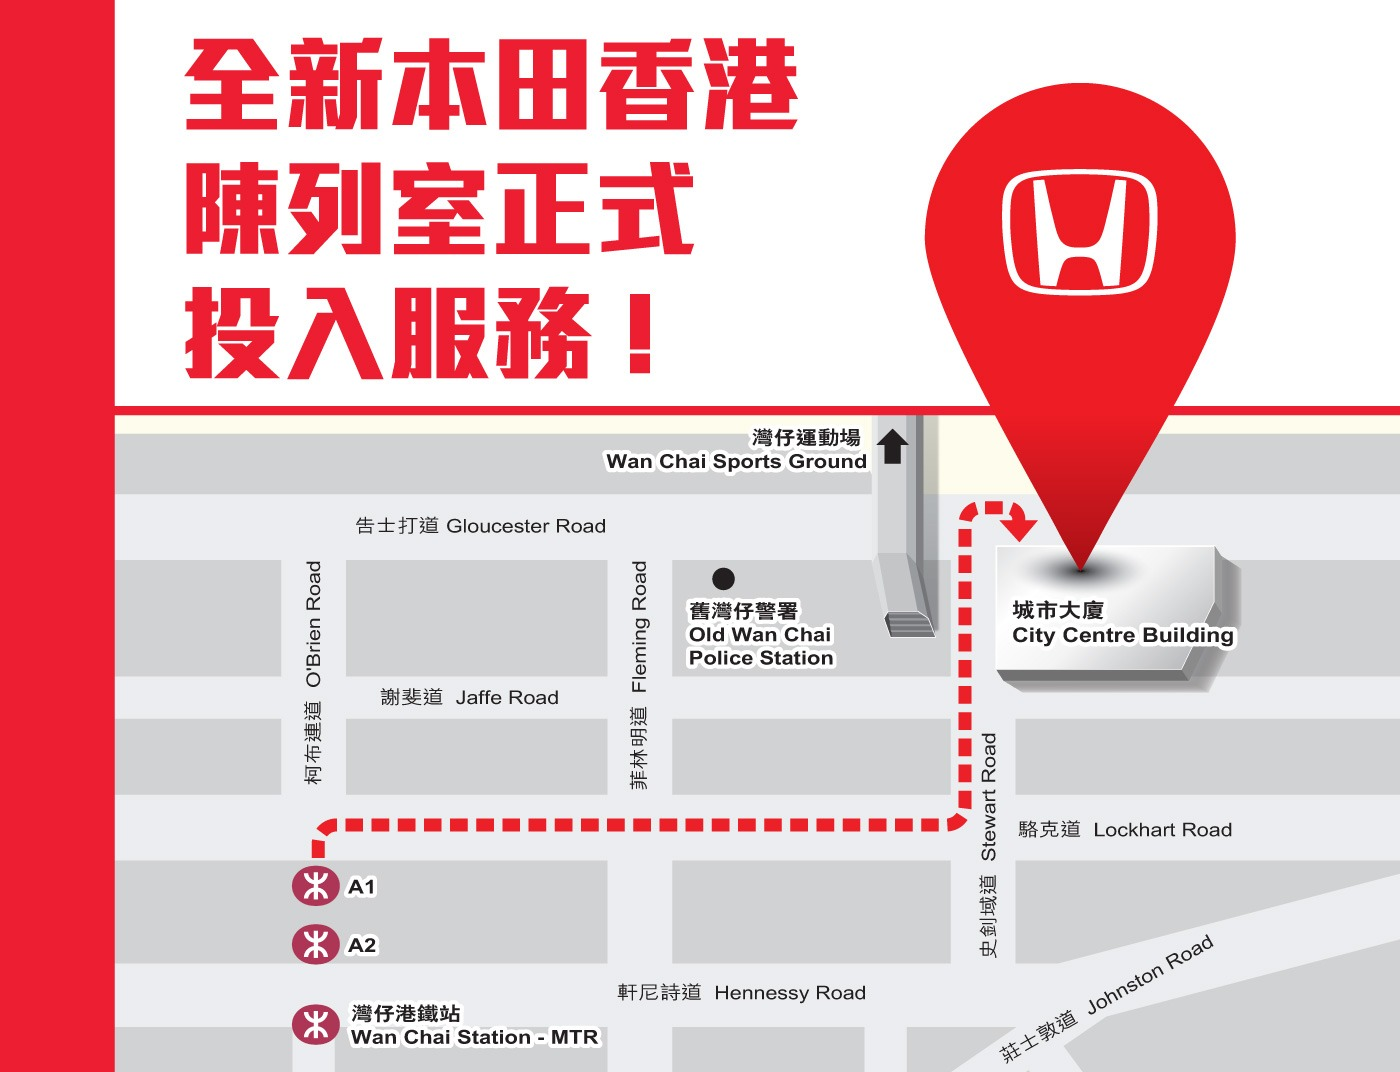 Honda Hong Kong New Showroom